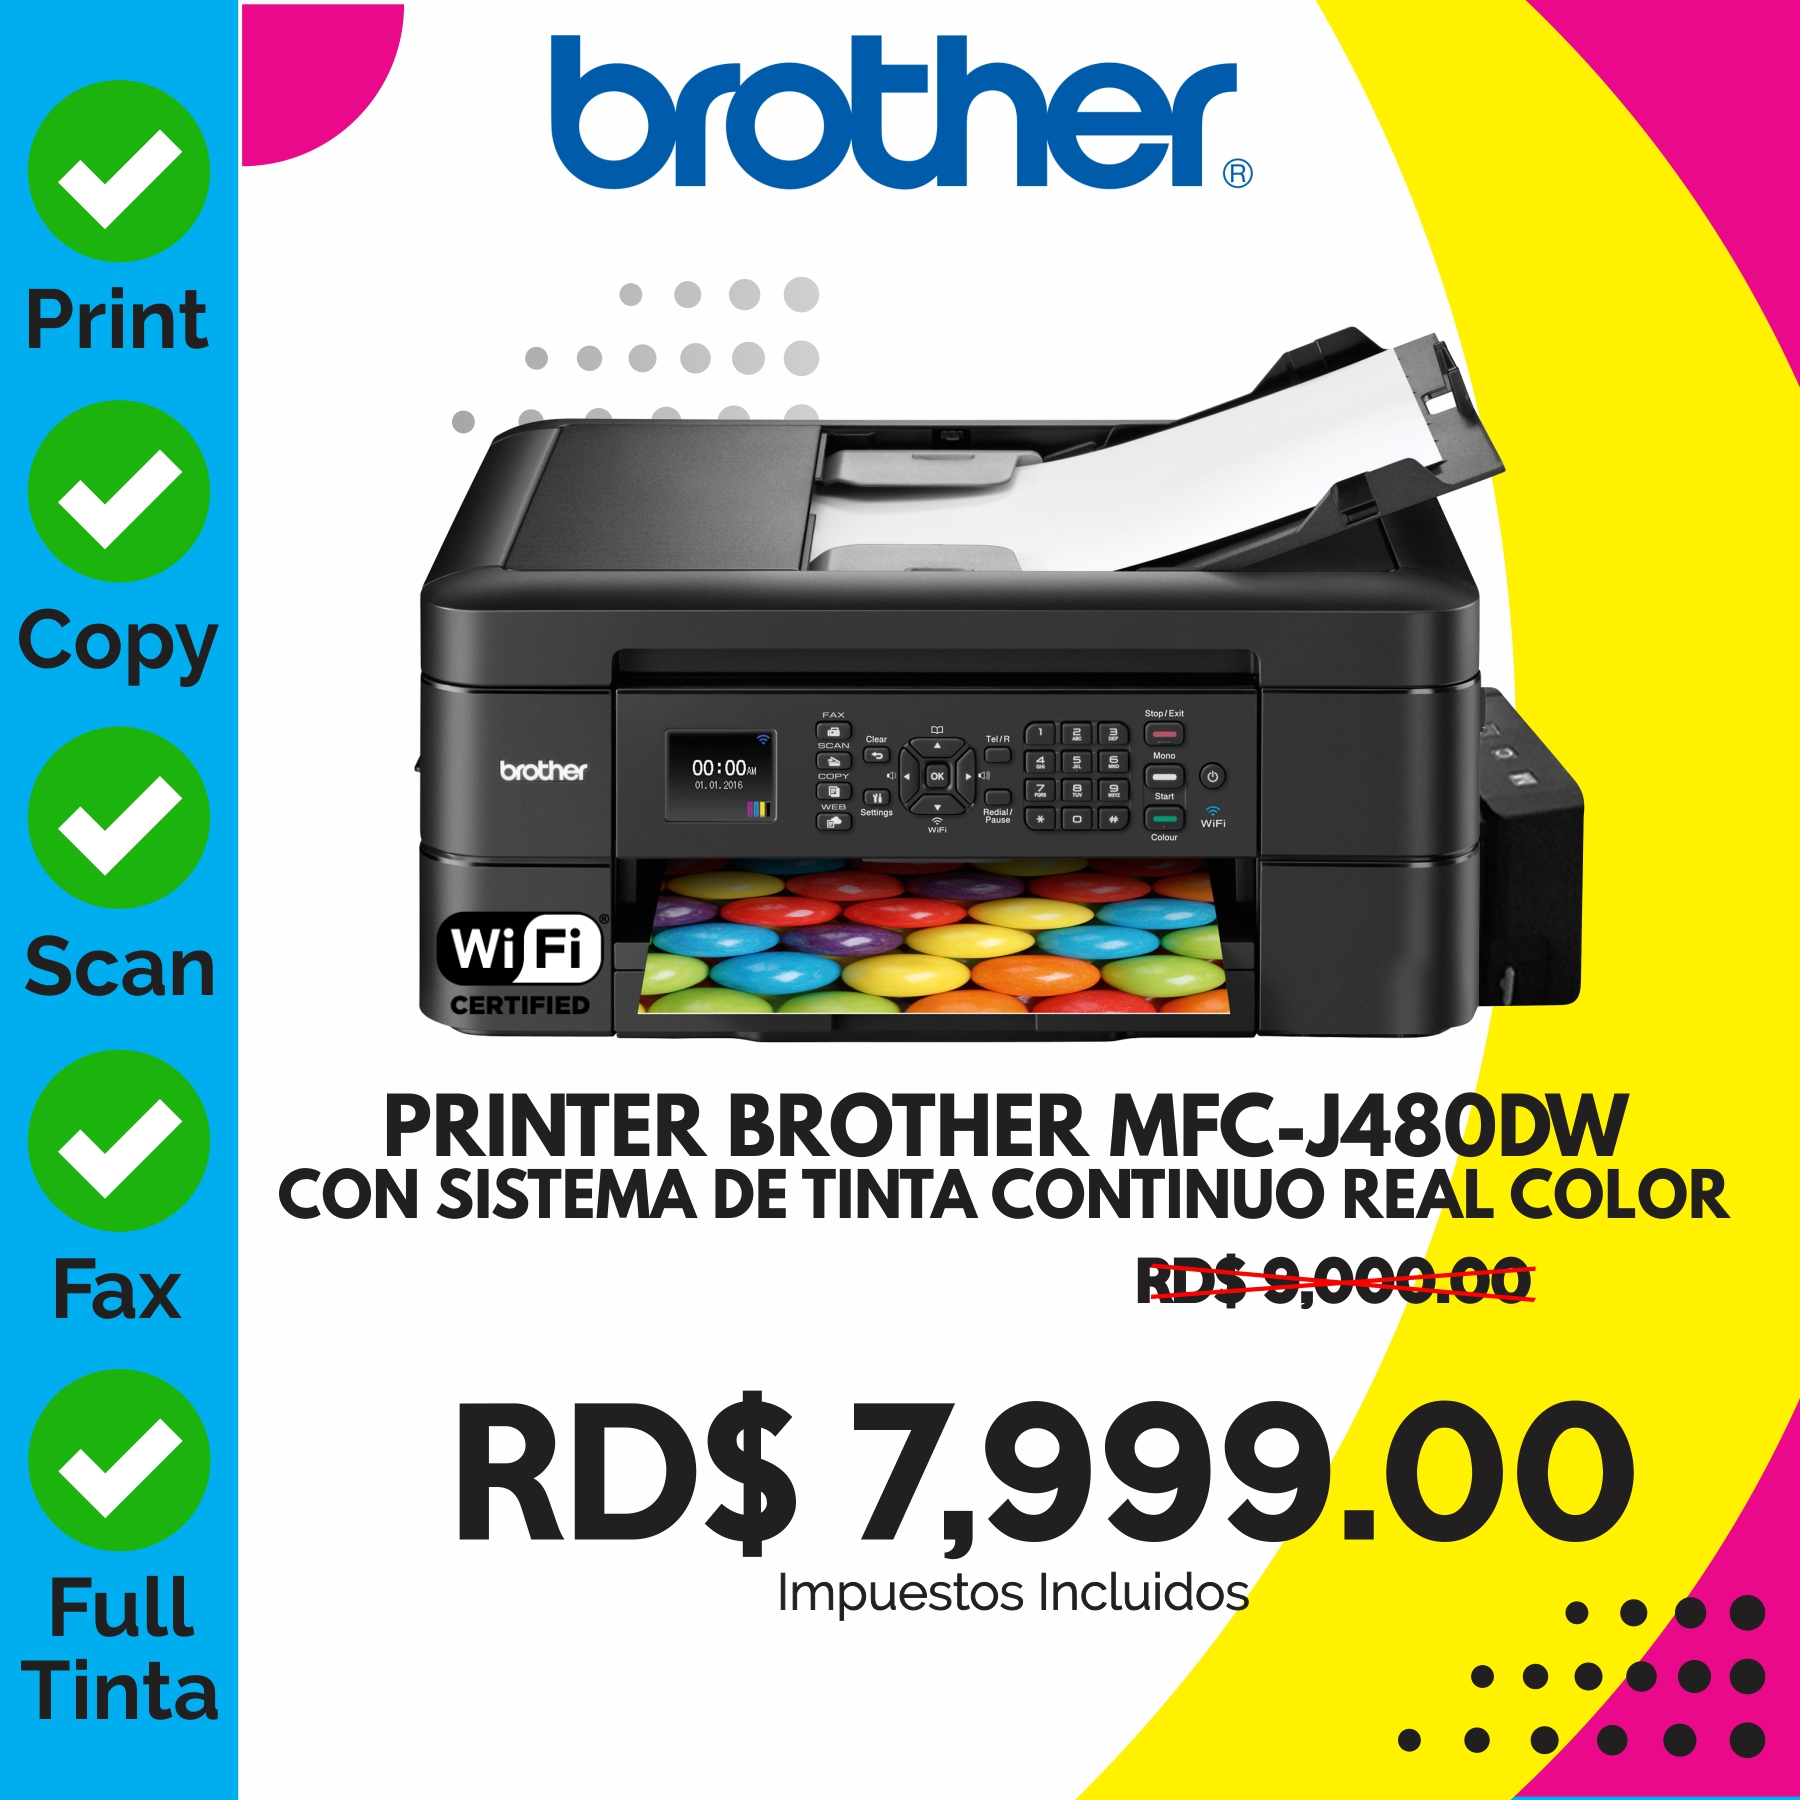 PRINTER BROTHER MFC-J480DW + SISTEMA TINTA REAL COLOR